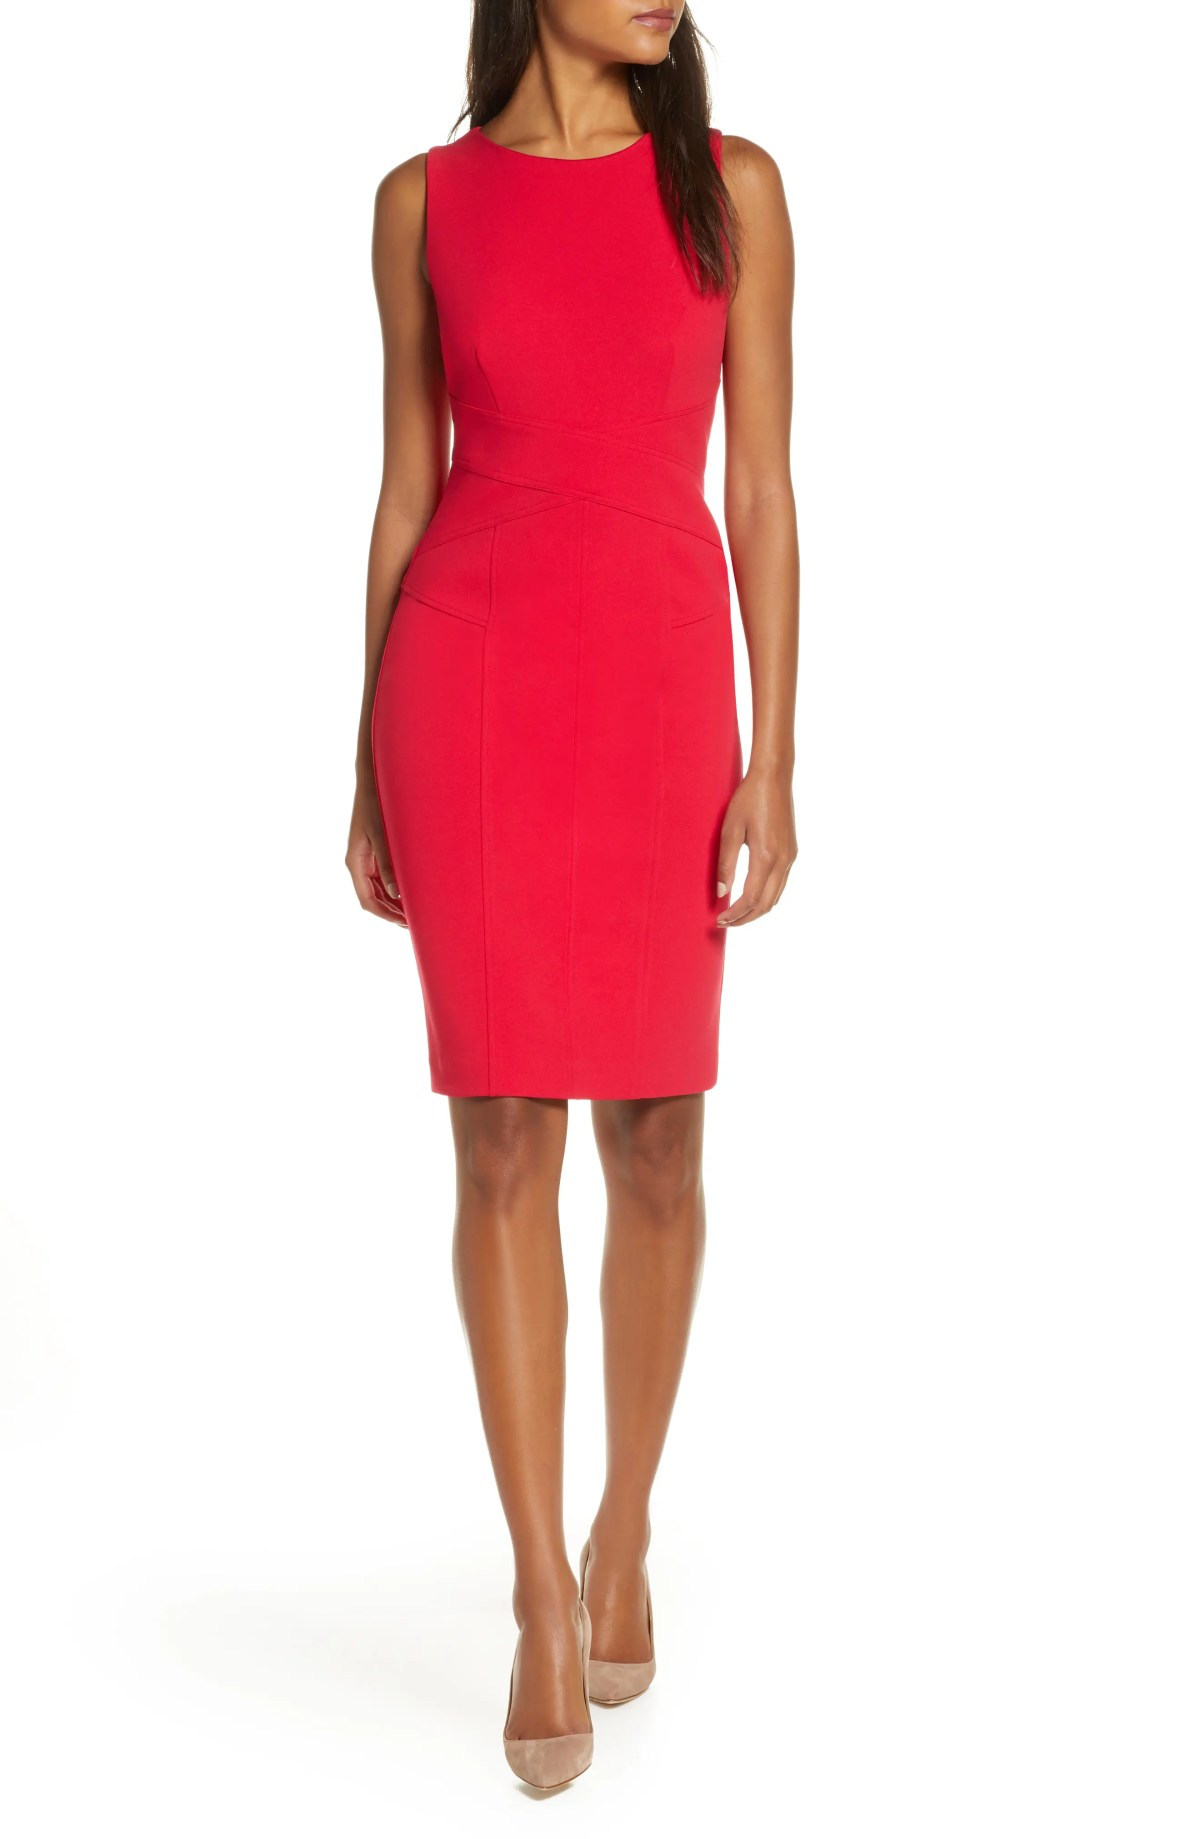 VINCE CAMUTO Sleeveless Crepe Sheath Dress, Main, color, HOT PINK